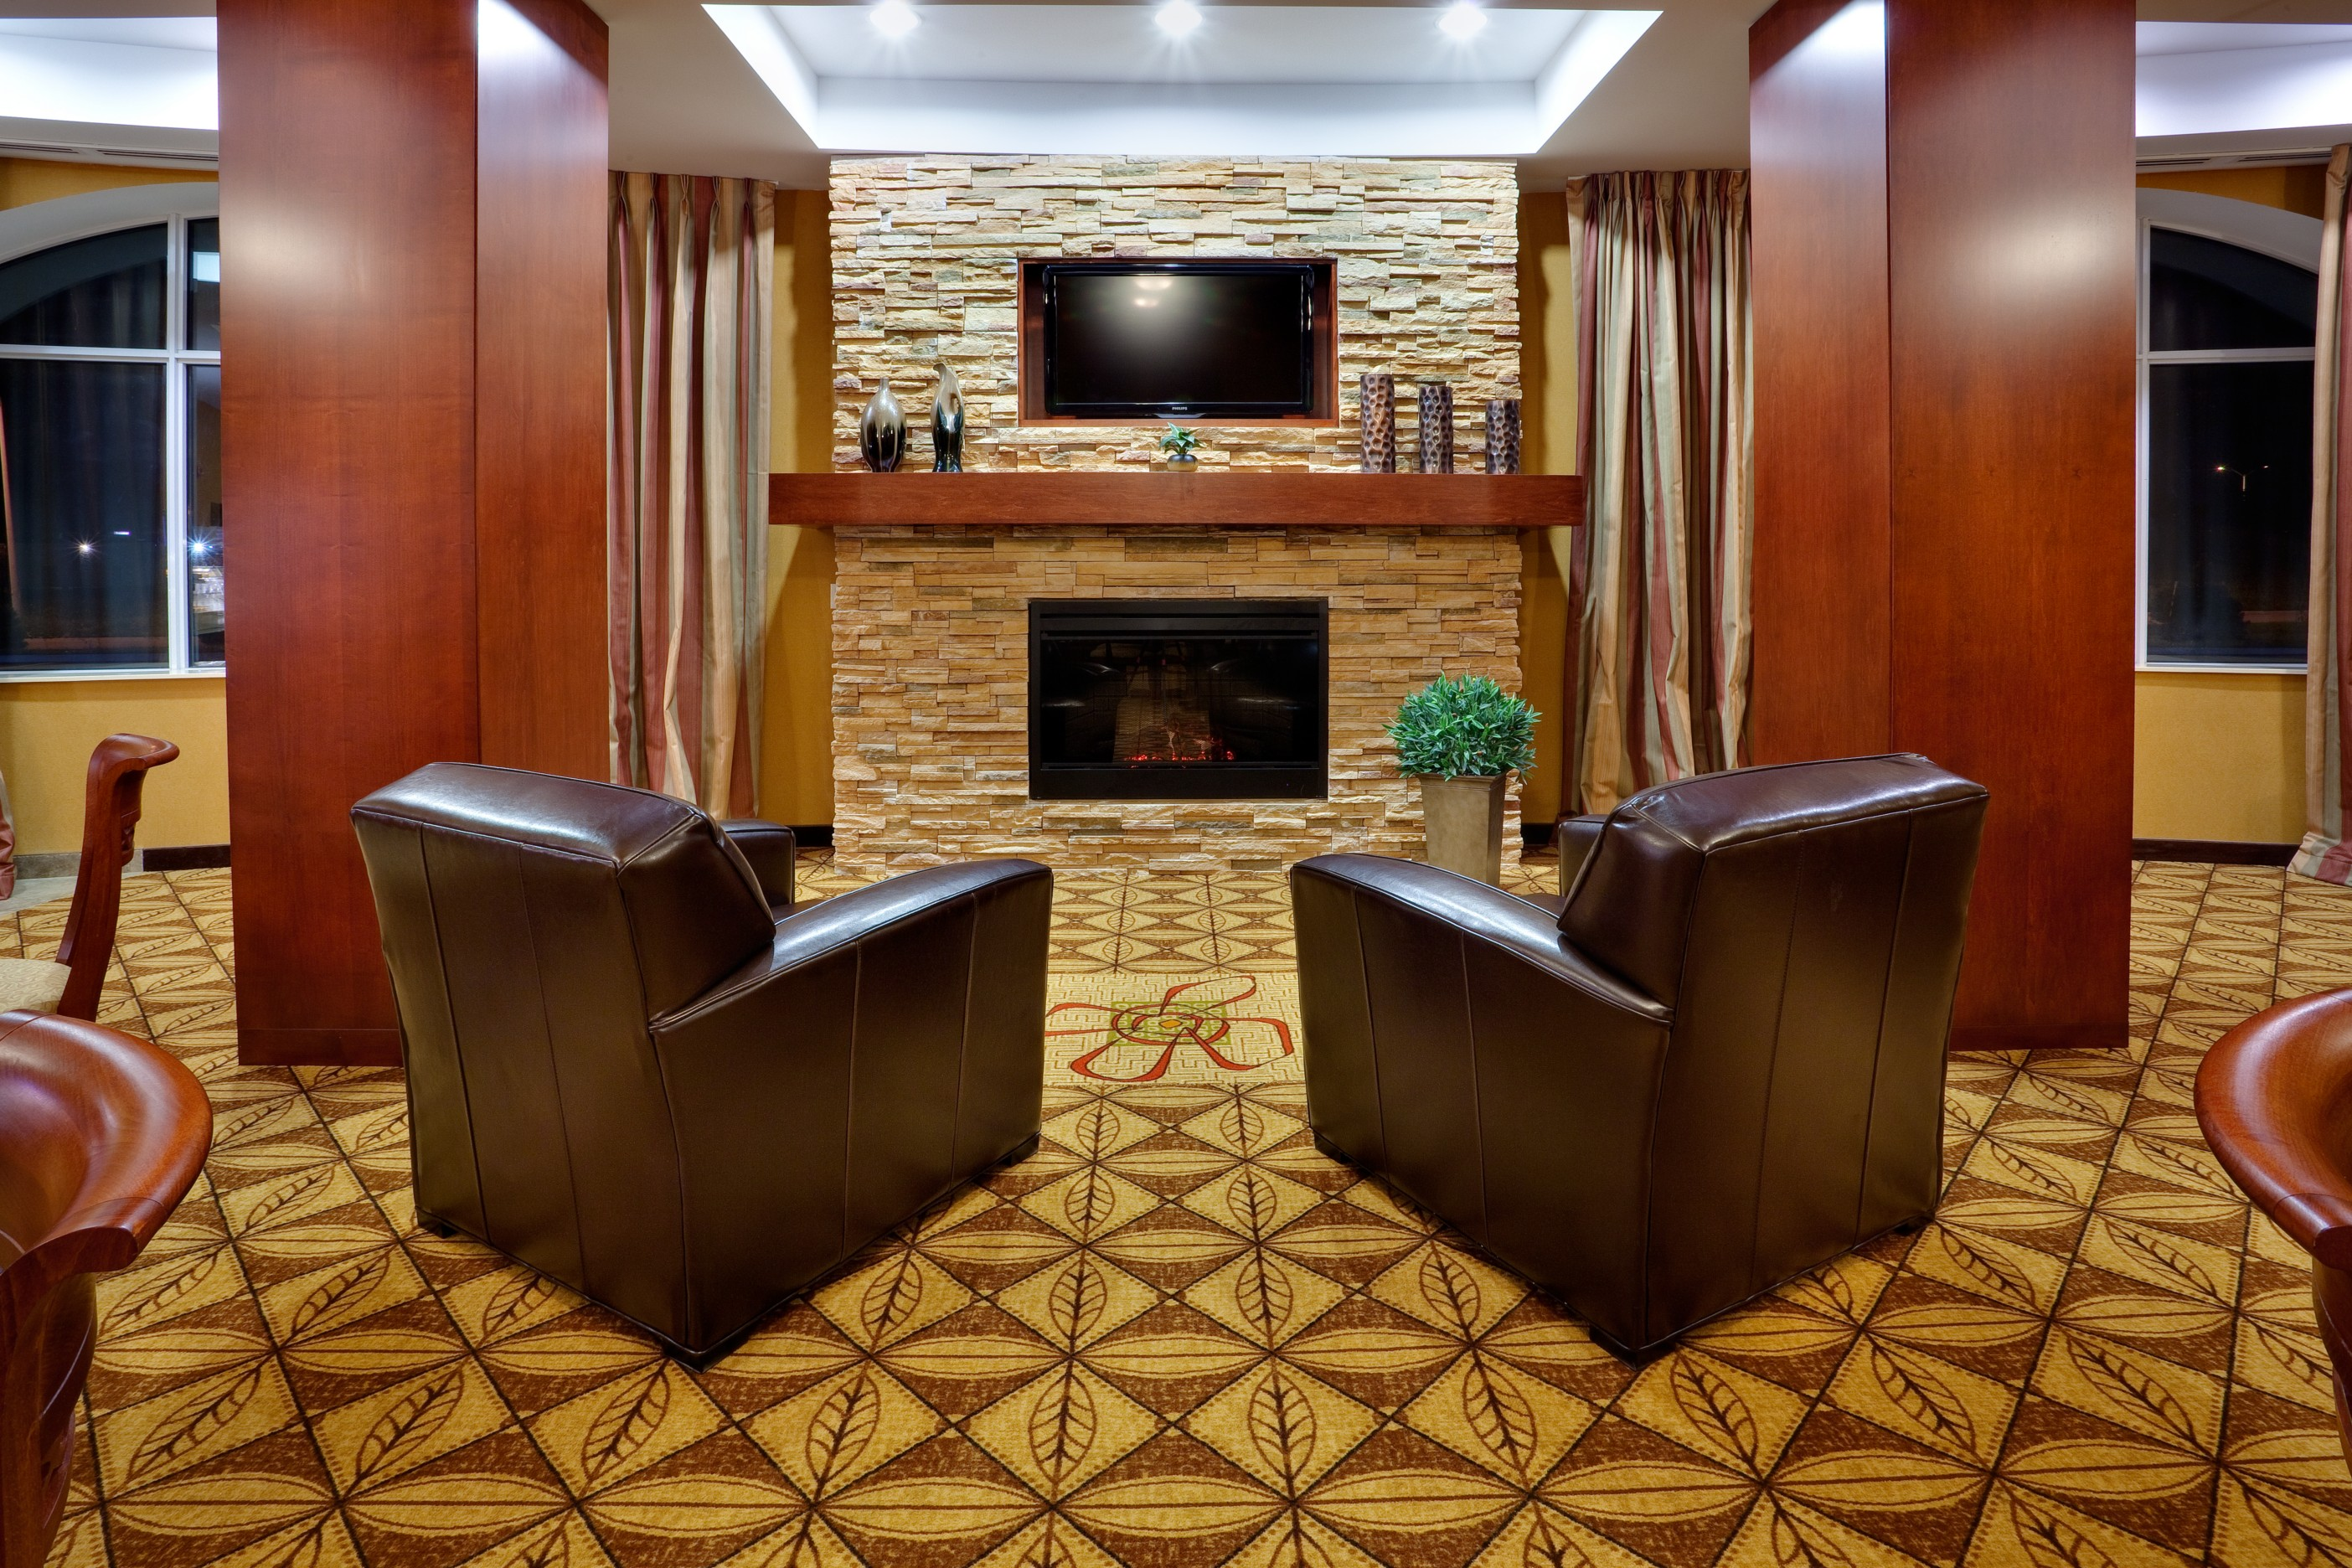 Holiday Inn Express & Suites Bowmanville image 0